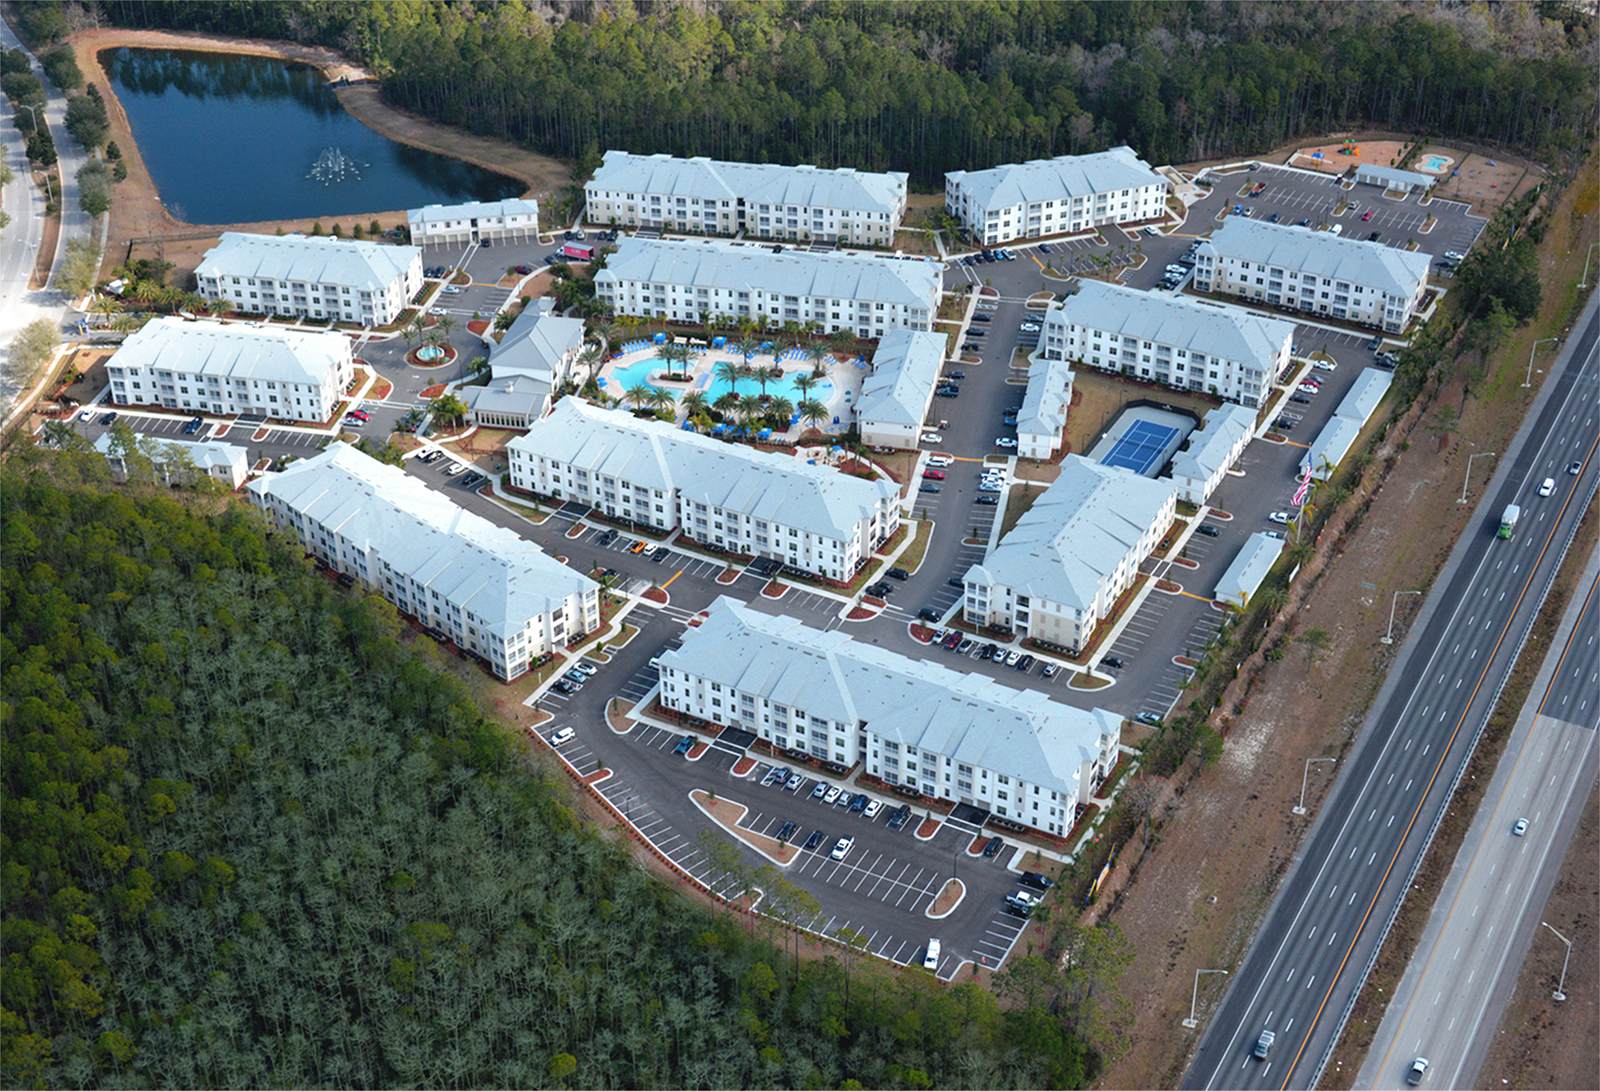 Aerial shot of apartment complex with pool area and palm trees